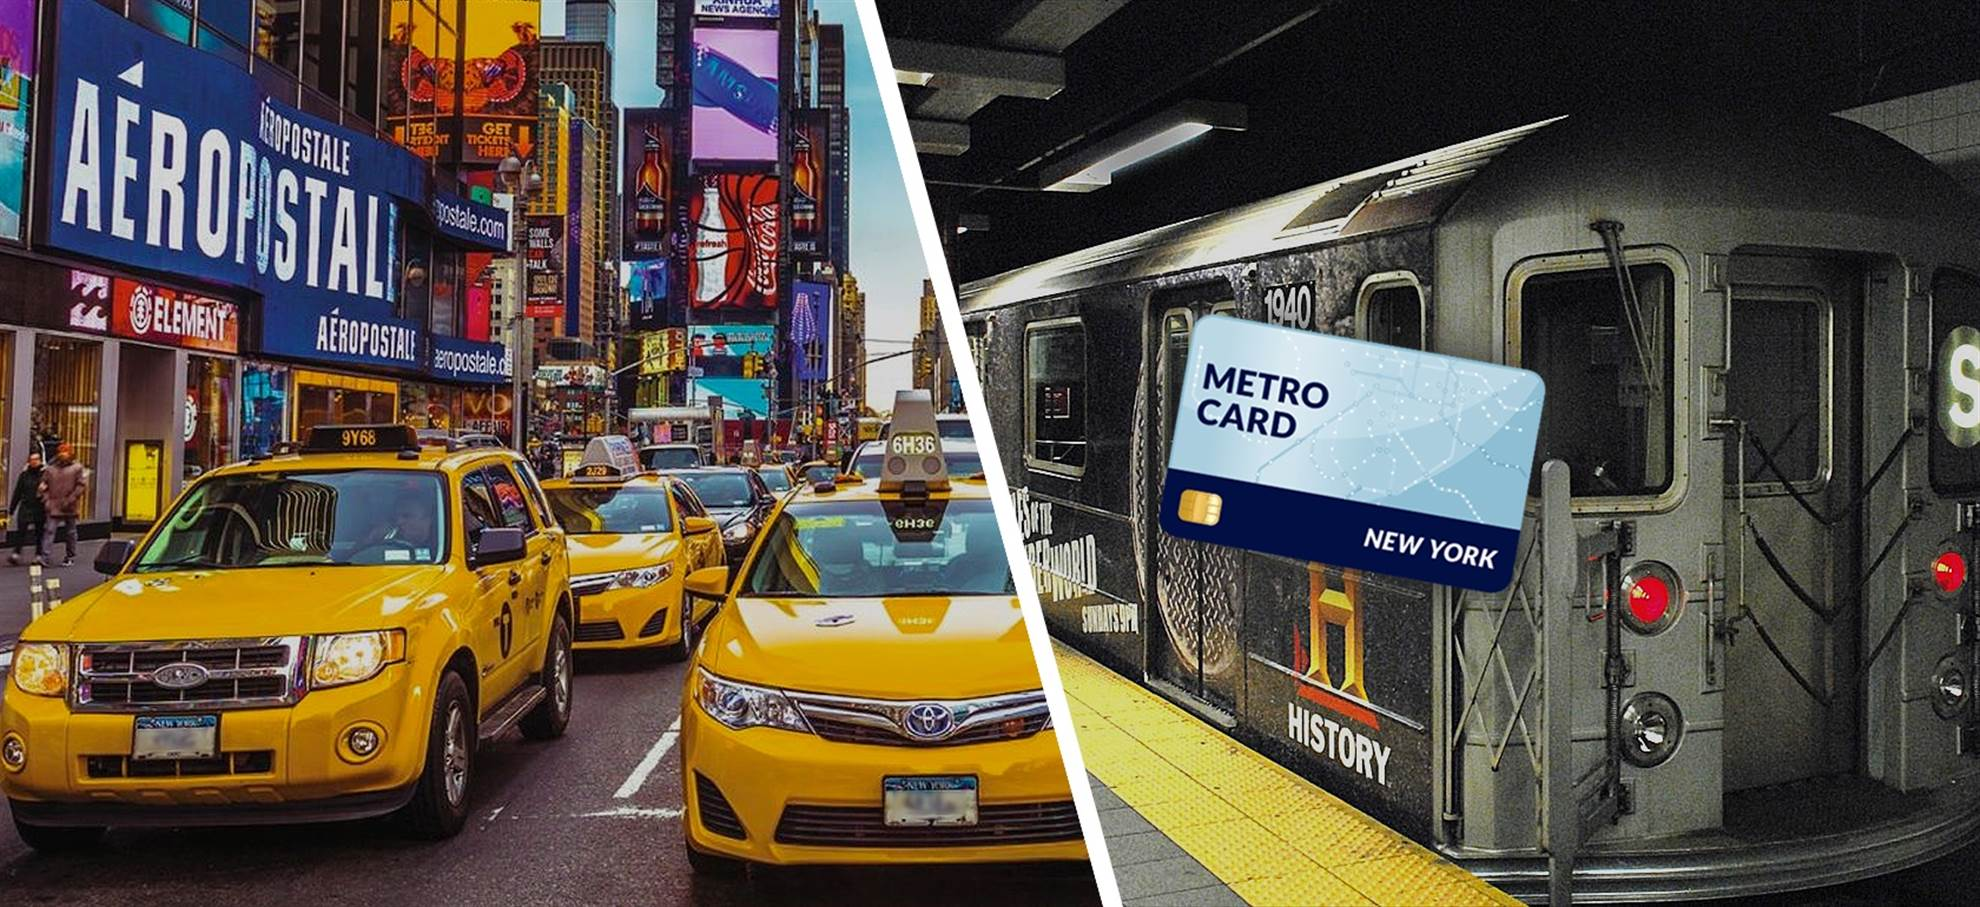 Nueva York Travel Card